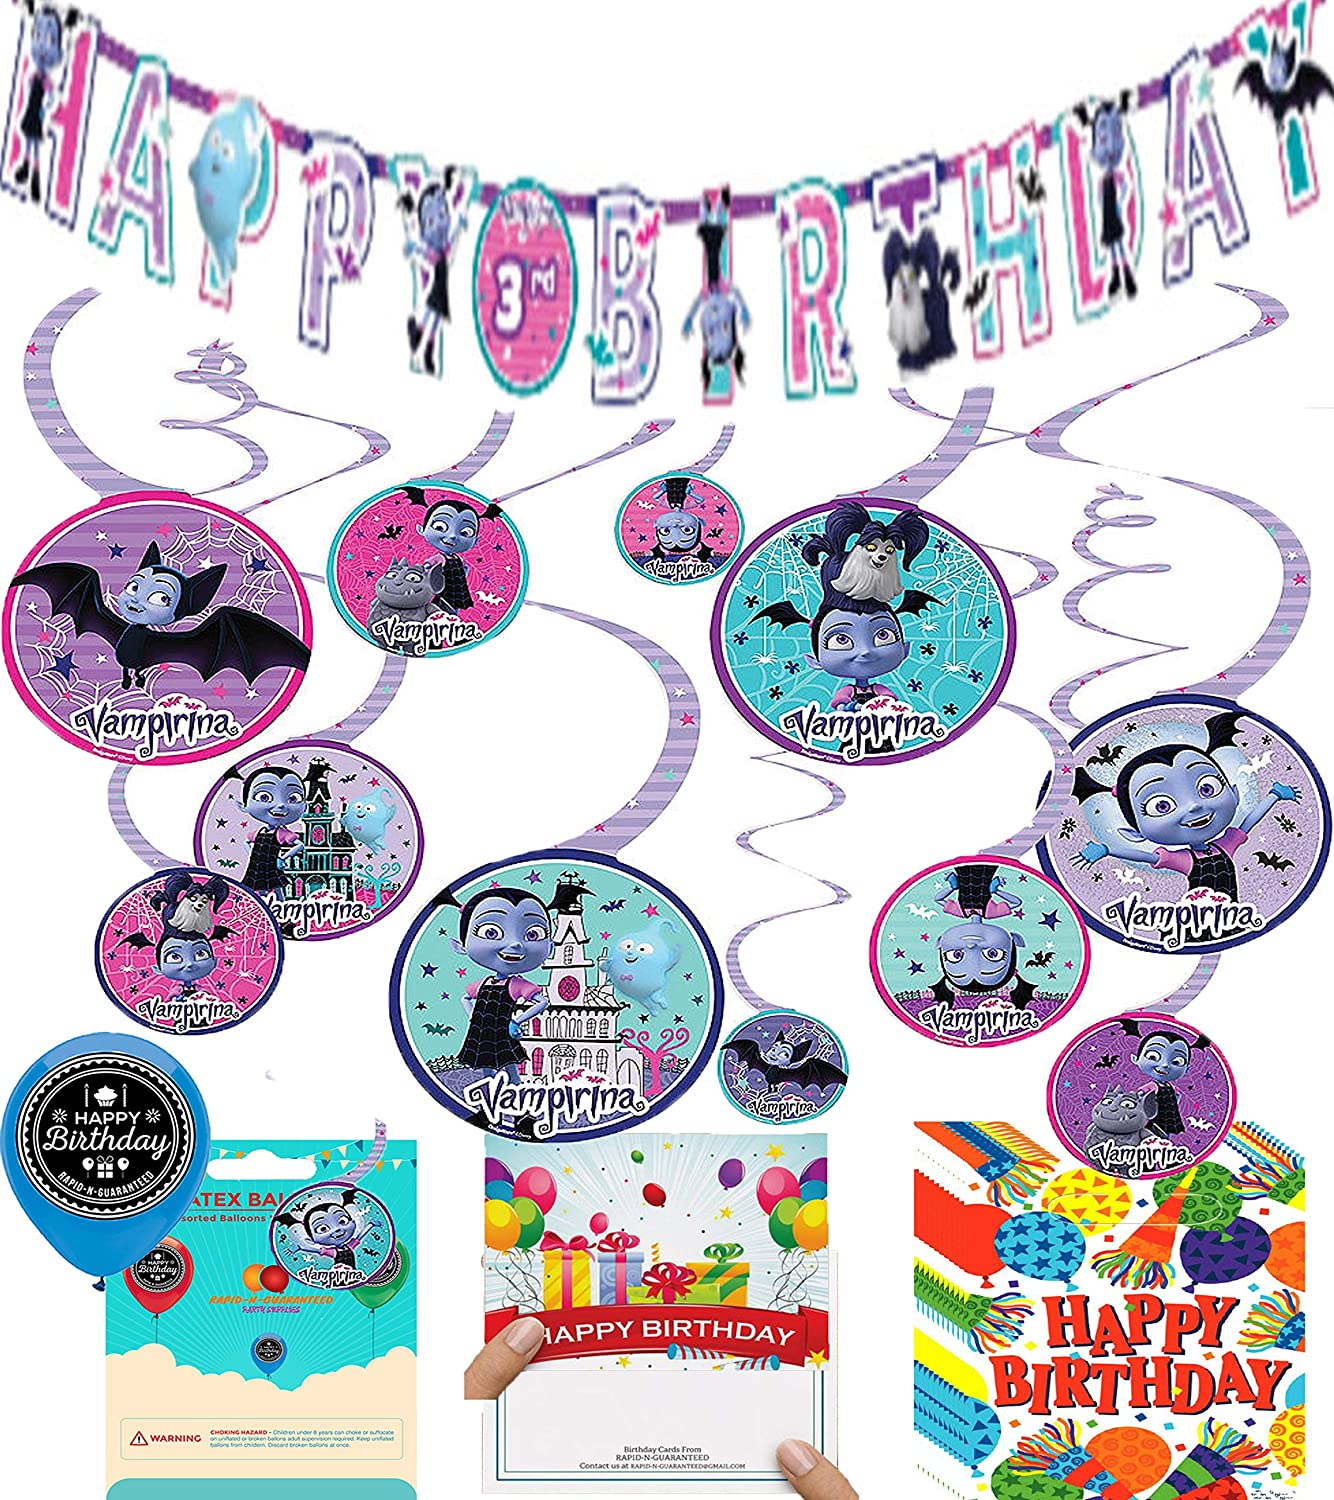 Amazon.com: Vampirina Party Supplies - Globos decorativos ...